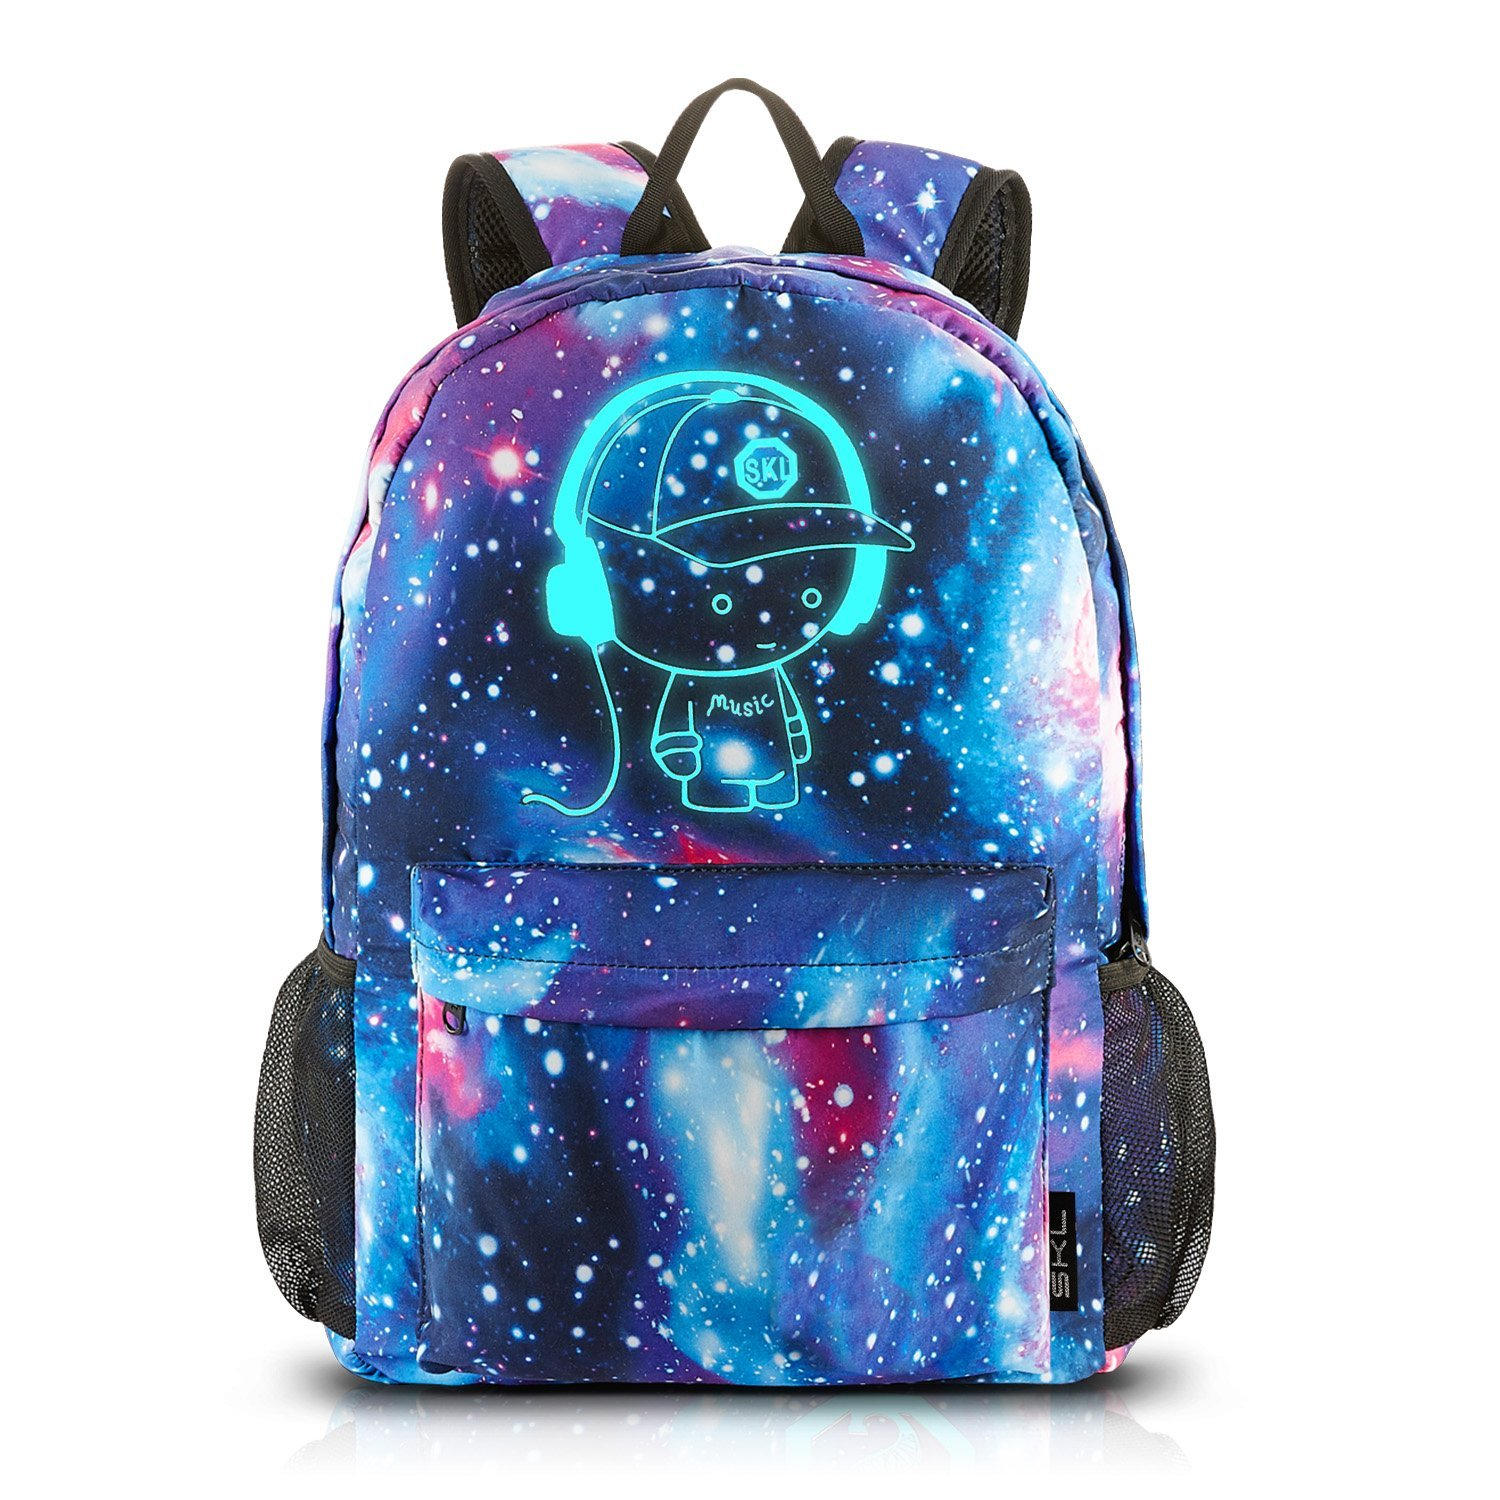 Galaxy School Backpack,Cool Unisex Canvas Backpack Anime Luminous Backpack Daypack Shoulder School Bag Laptop Bag (Blue) CB-0829